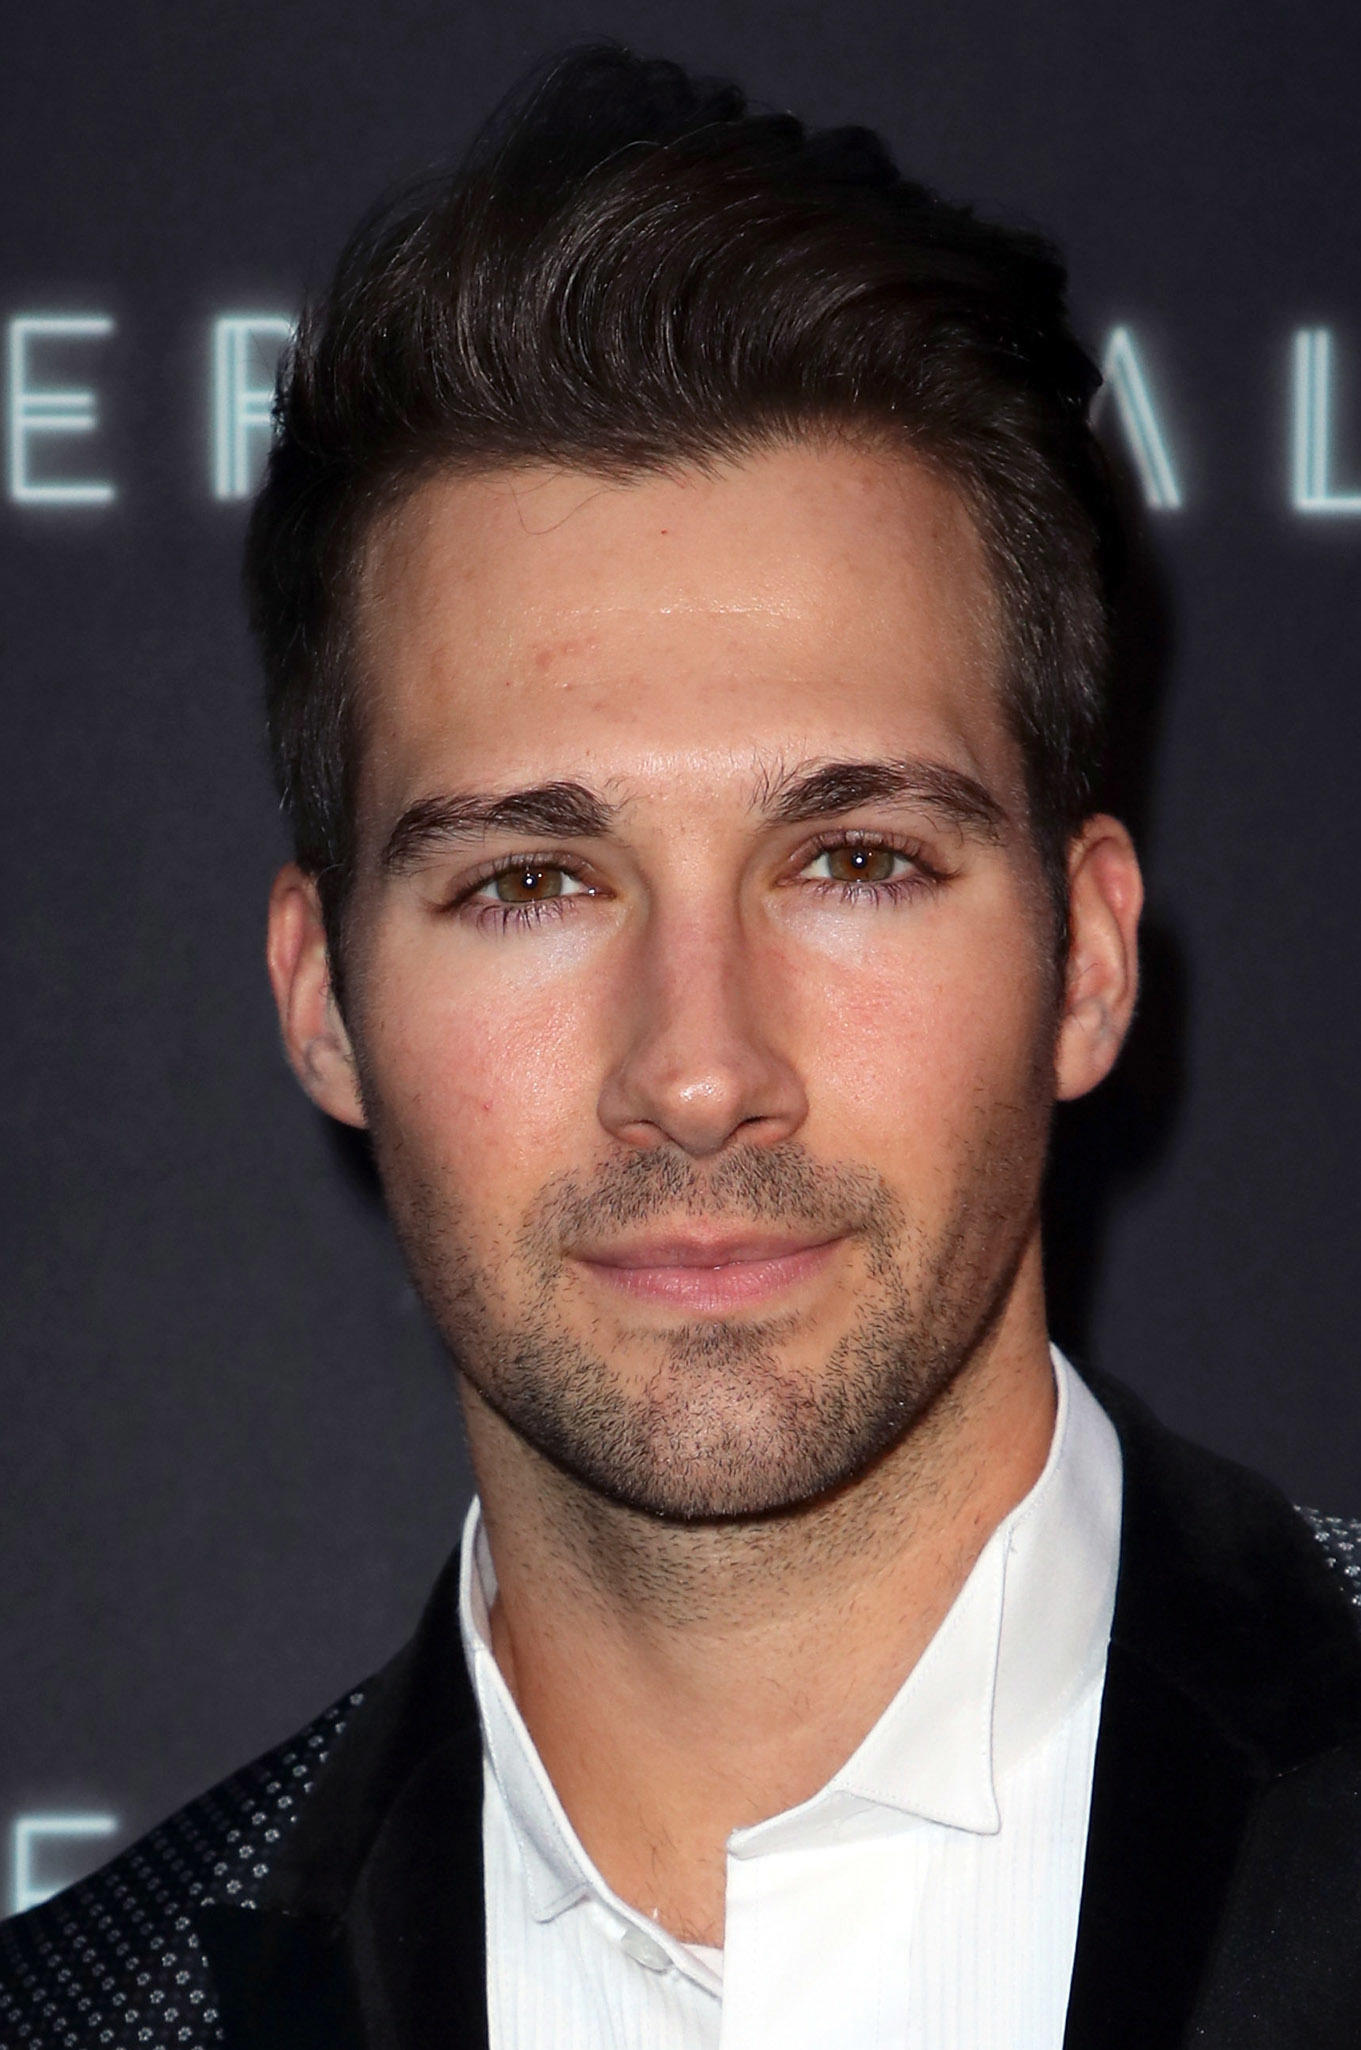 James Maslow at the premiere of